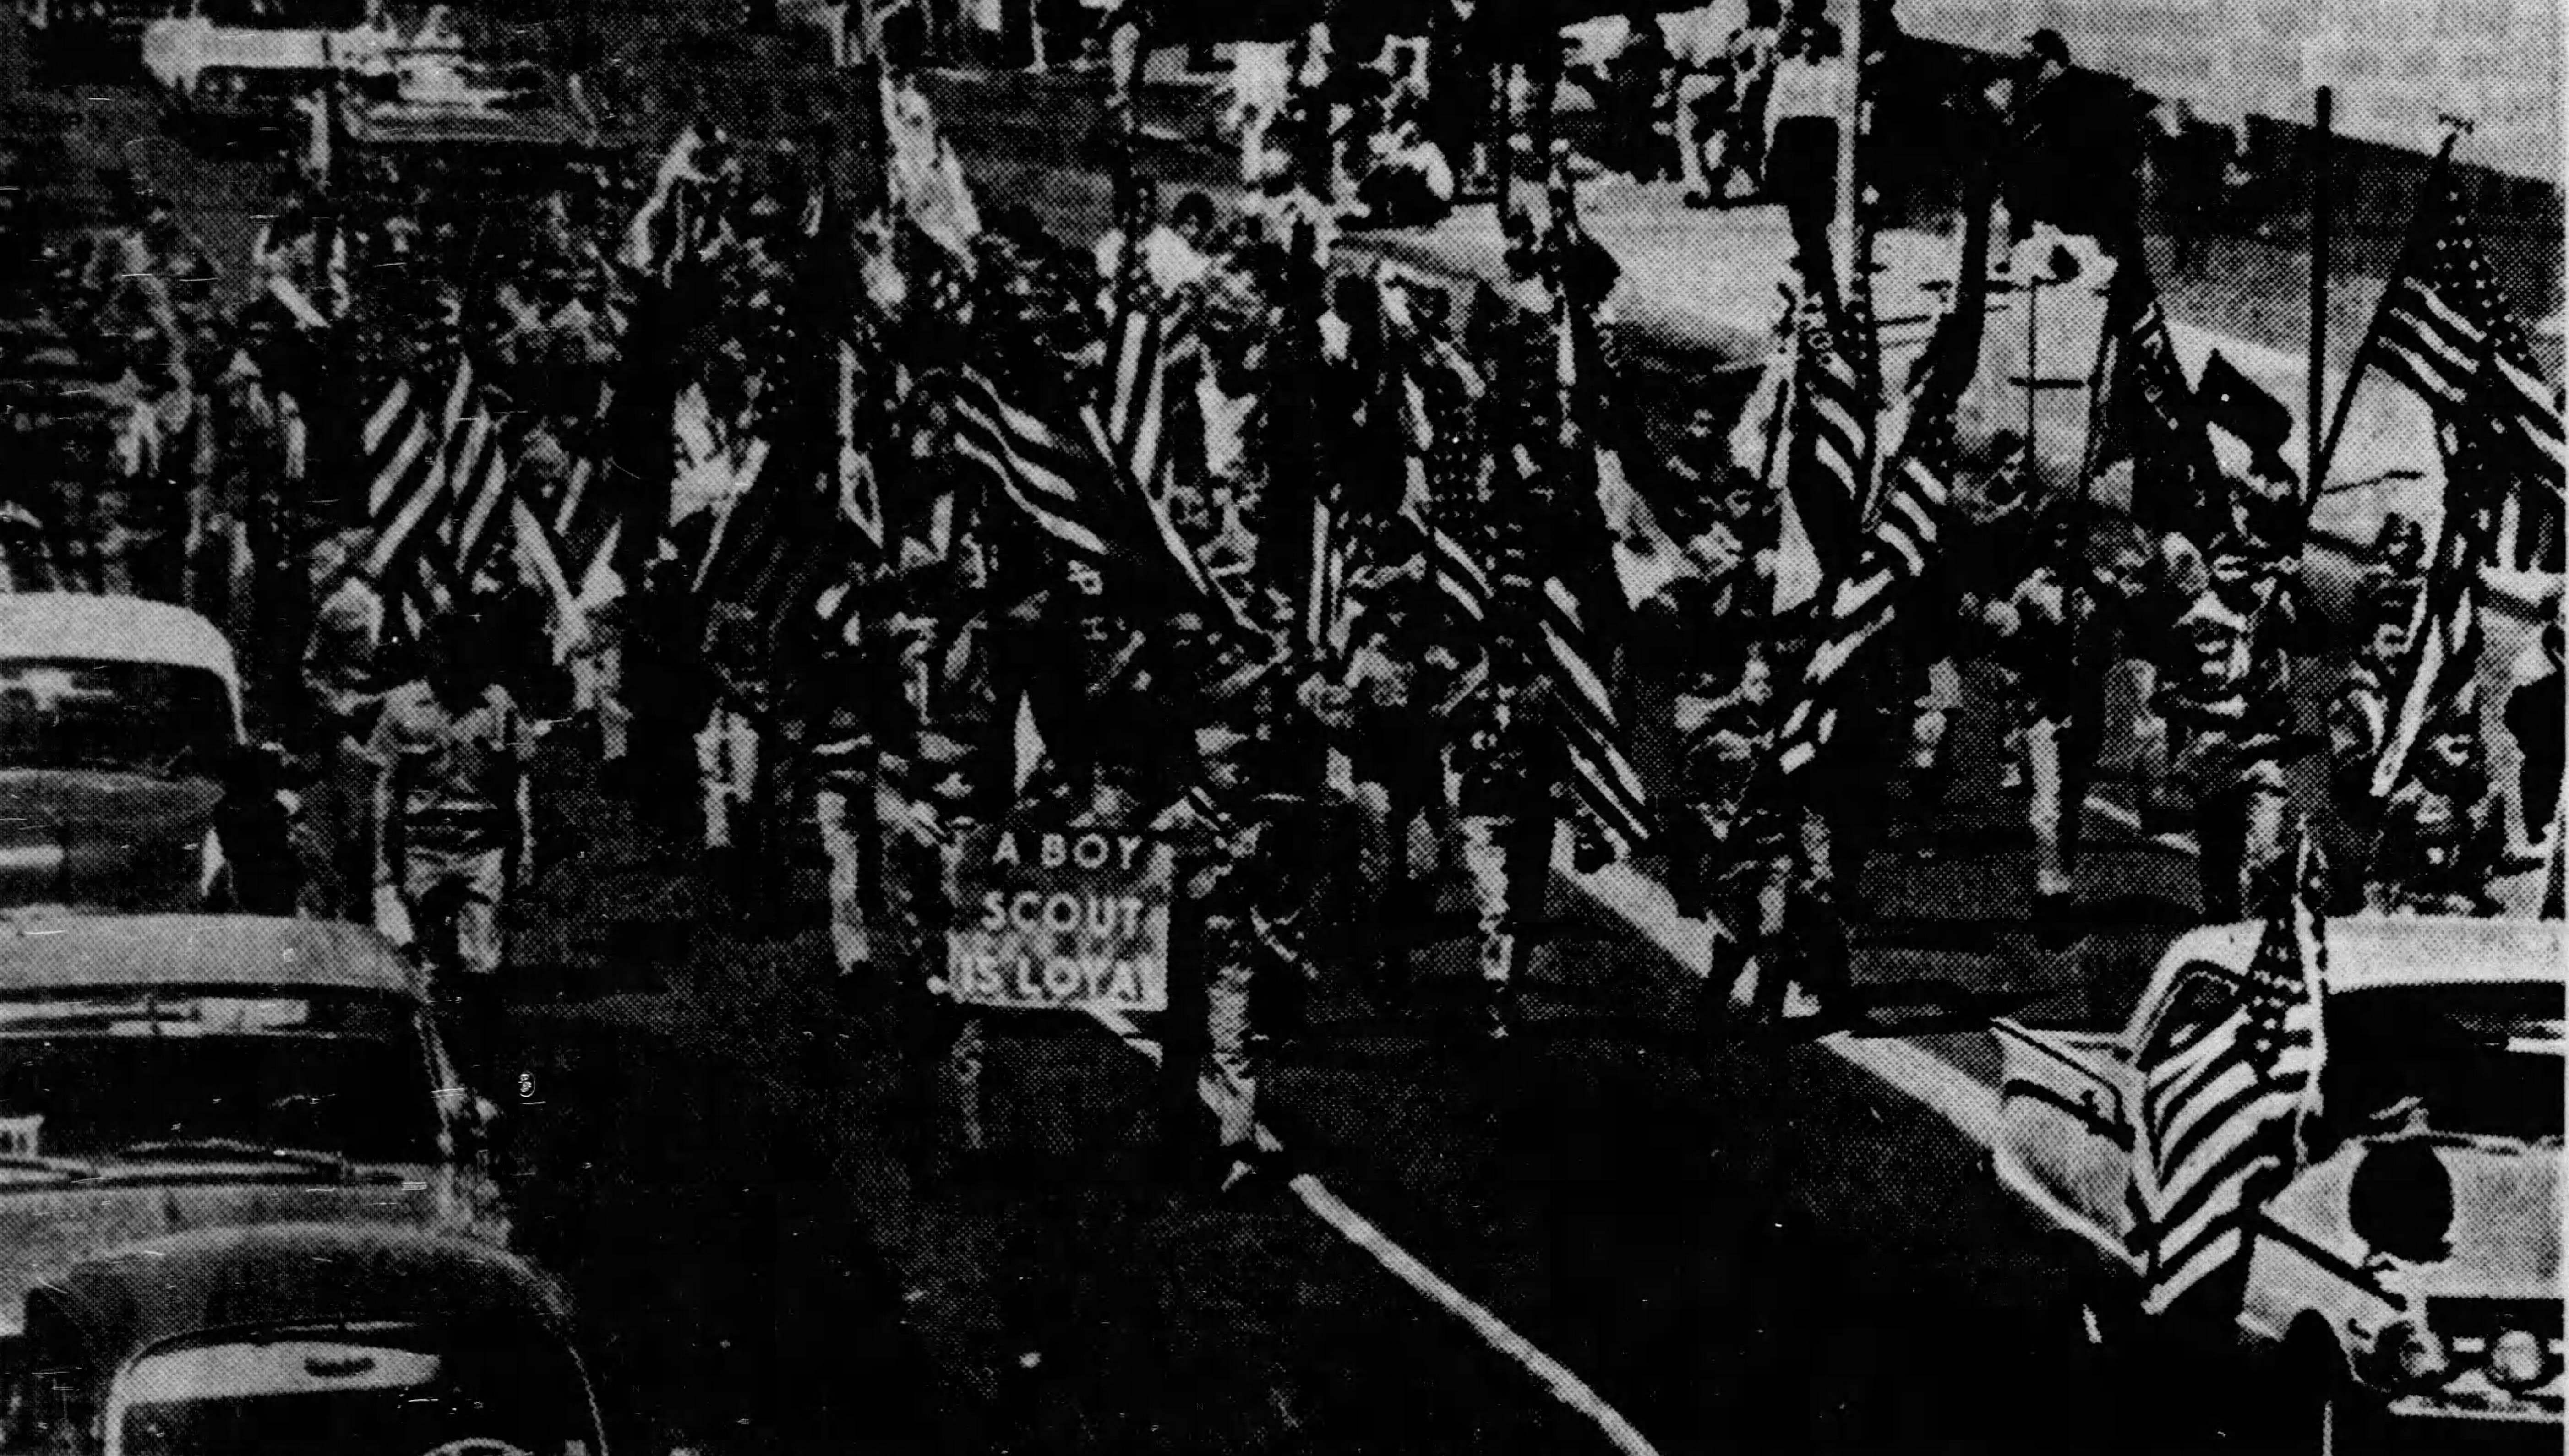 1967 Loyalty Day Parade - A Scout is loyal and he shows it bymarching in the El Paso Loyalty Day Parade.